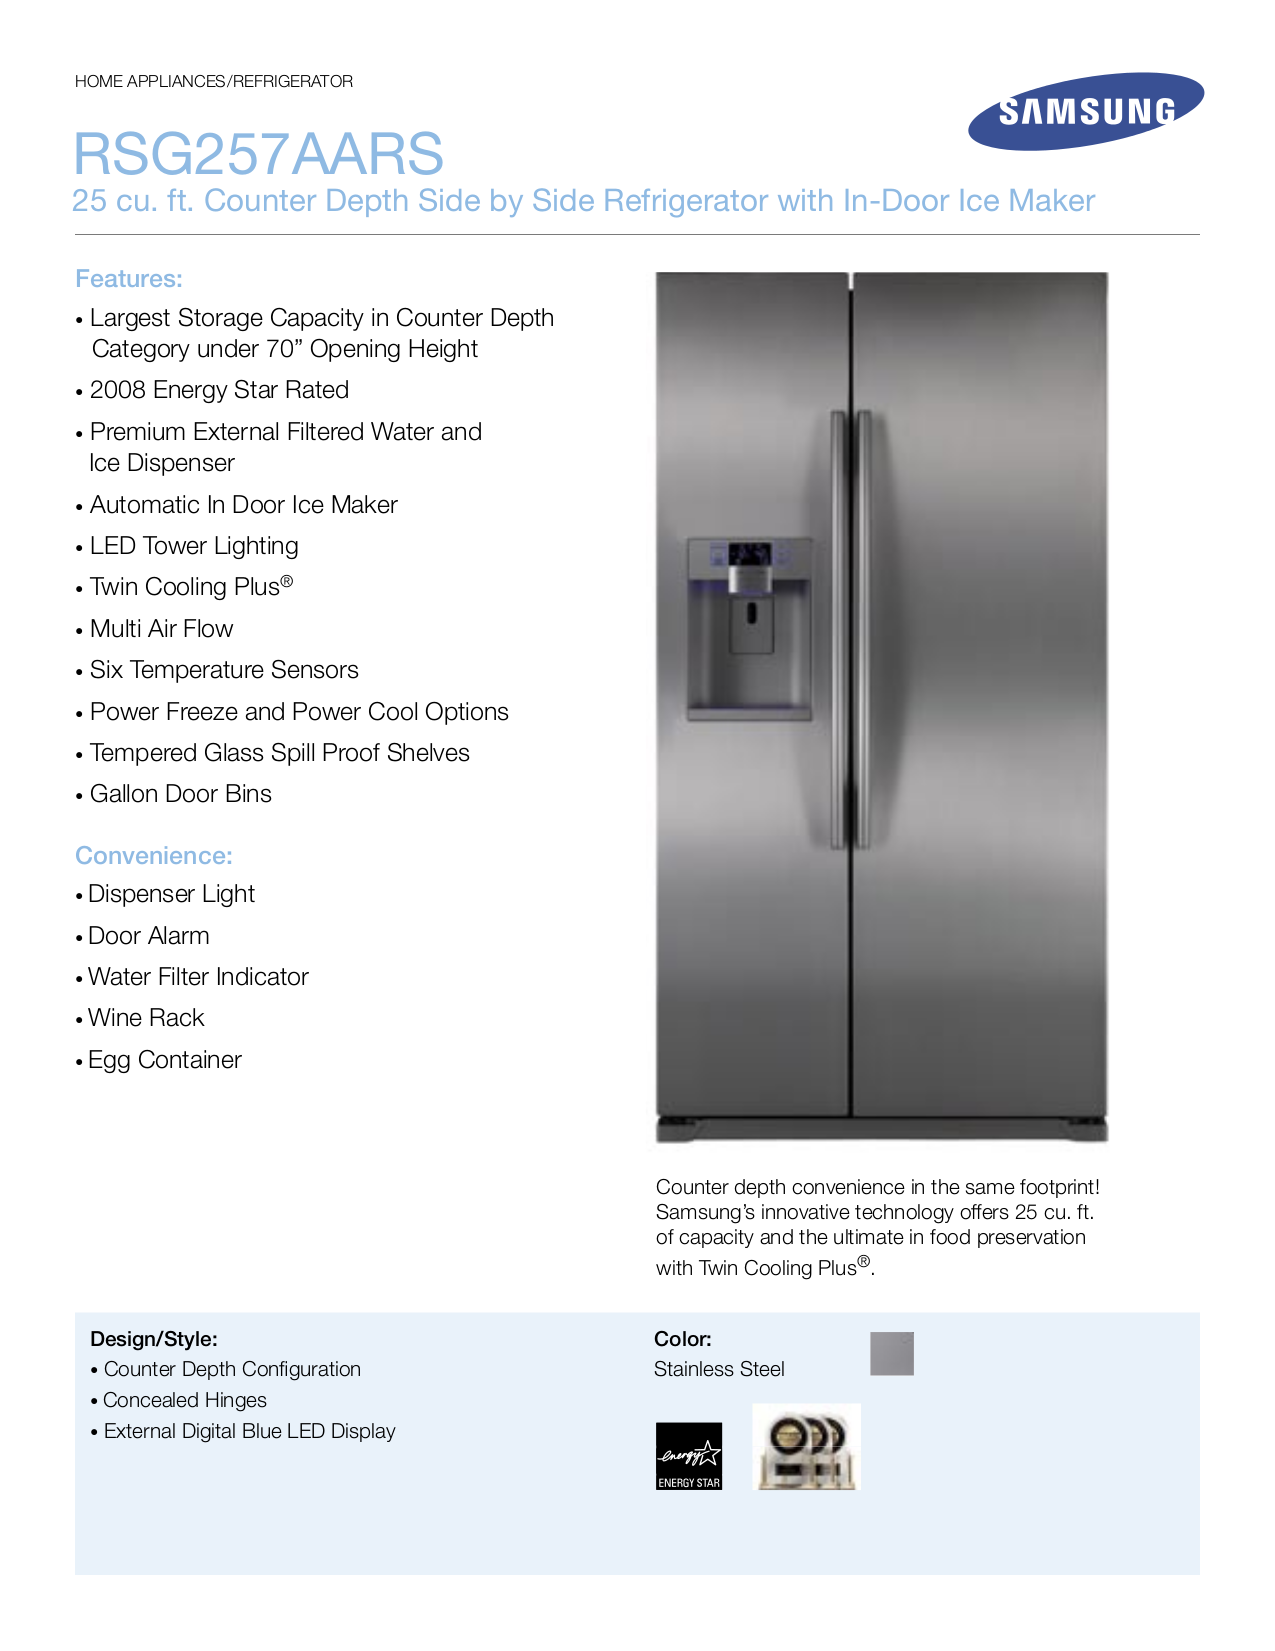 Pdf manual for samsung refrigerator rsg257aars.